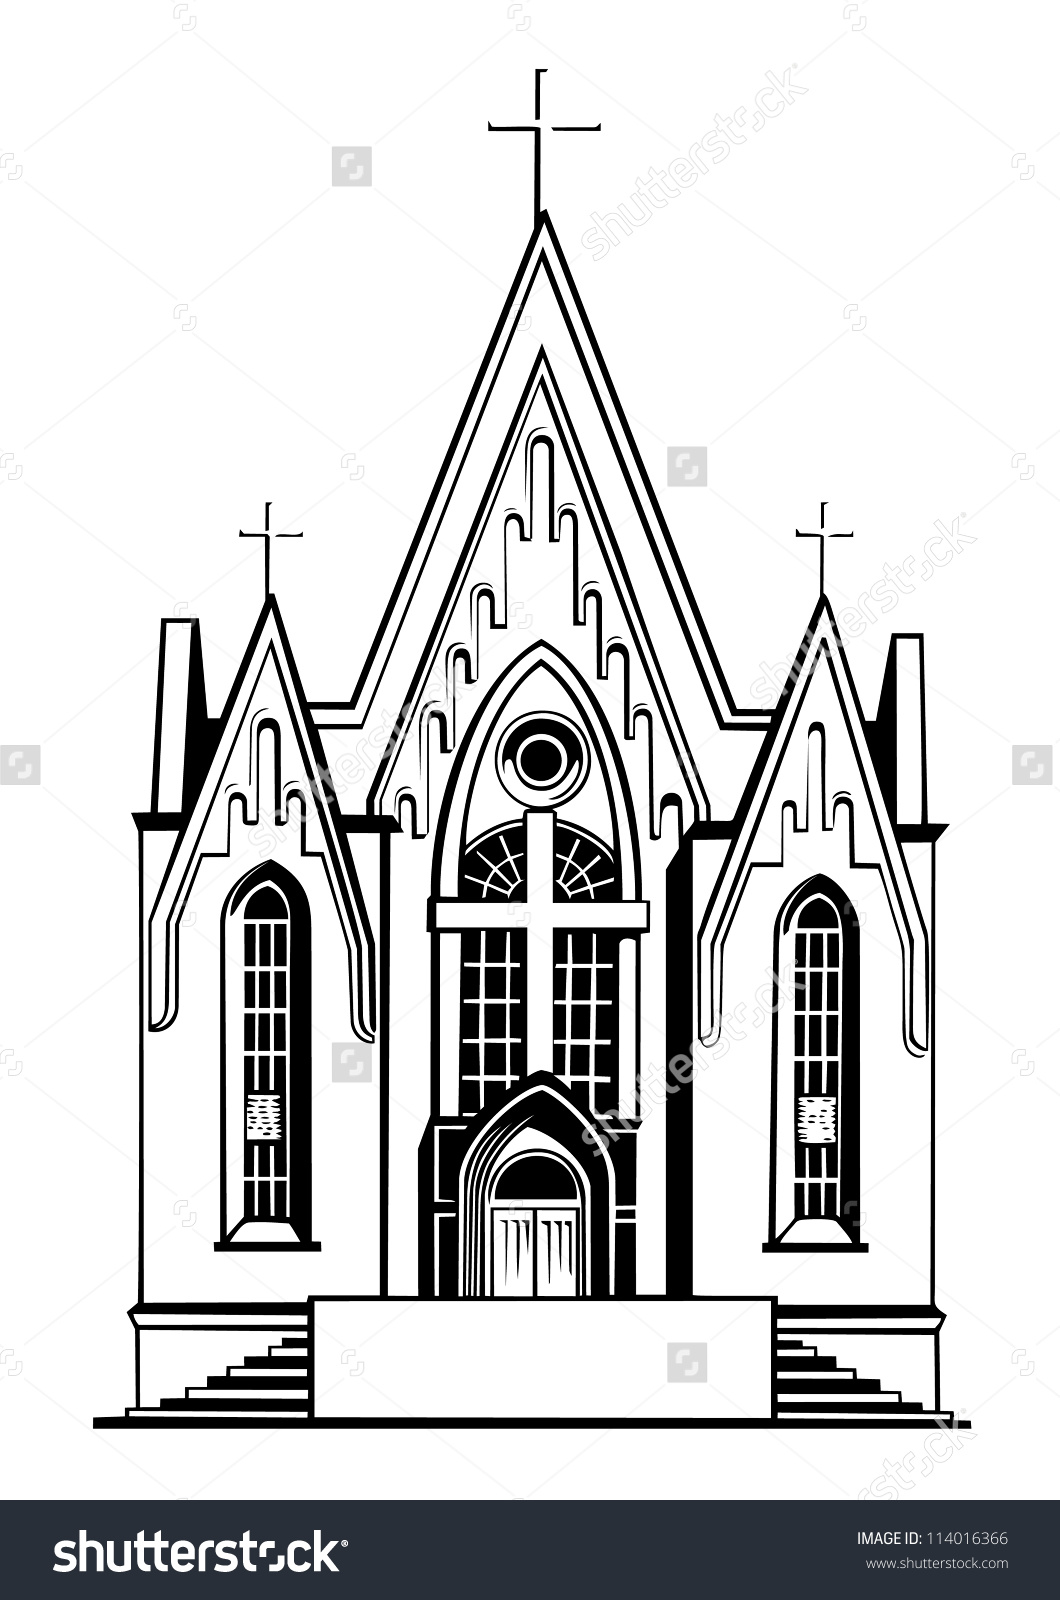 Church black and white clipart 5 » Clipart Station.